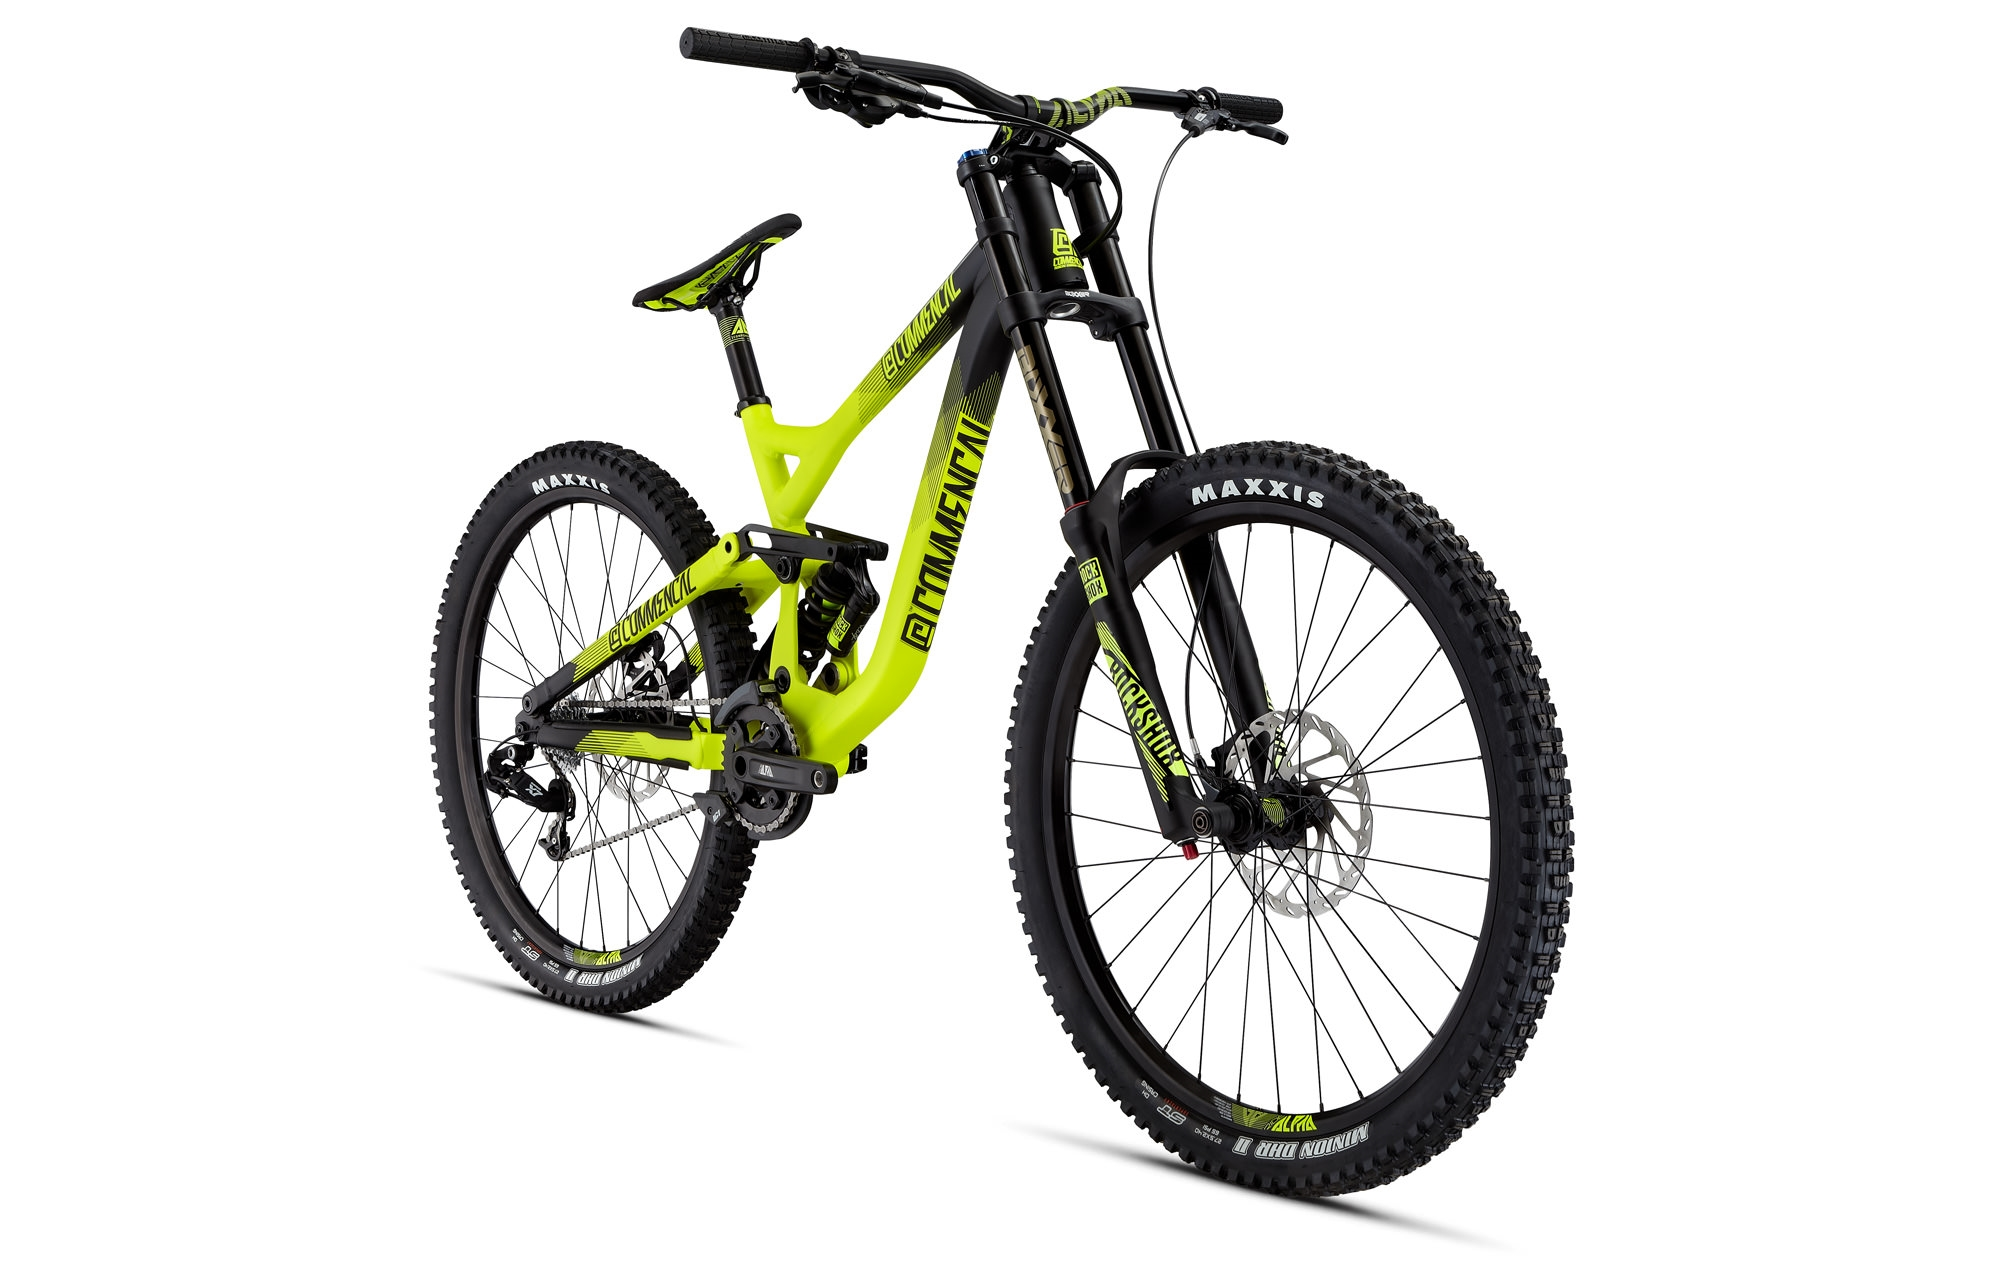 Nyu getingear activity1 besides Understanding gears in addition On the move travel furthermore Engineering Classwork together with Supreme Dh V3 Rockshox Yellow 2016 C2x17774279. on simple gear train